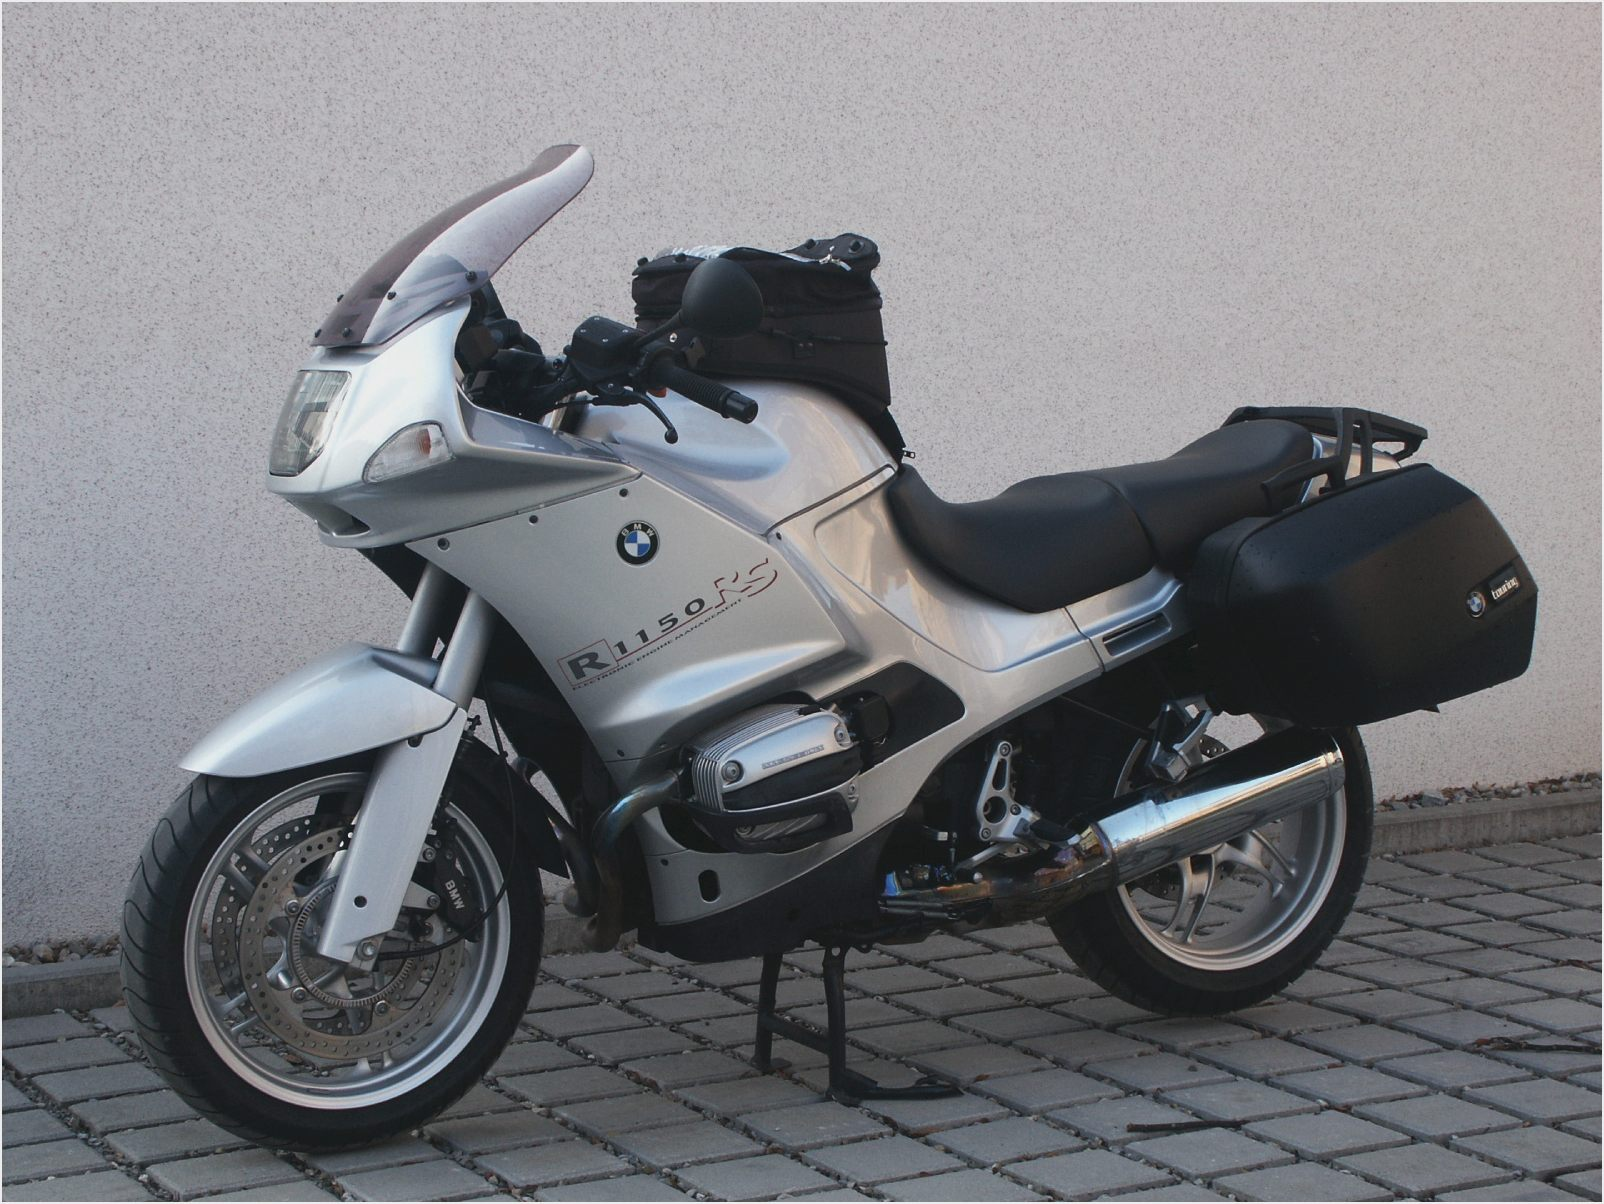 BMW R1150RS images #6858